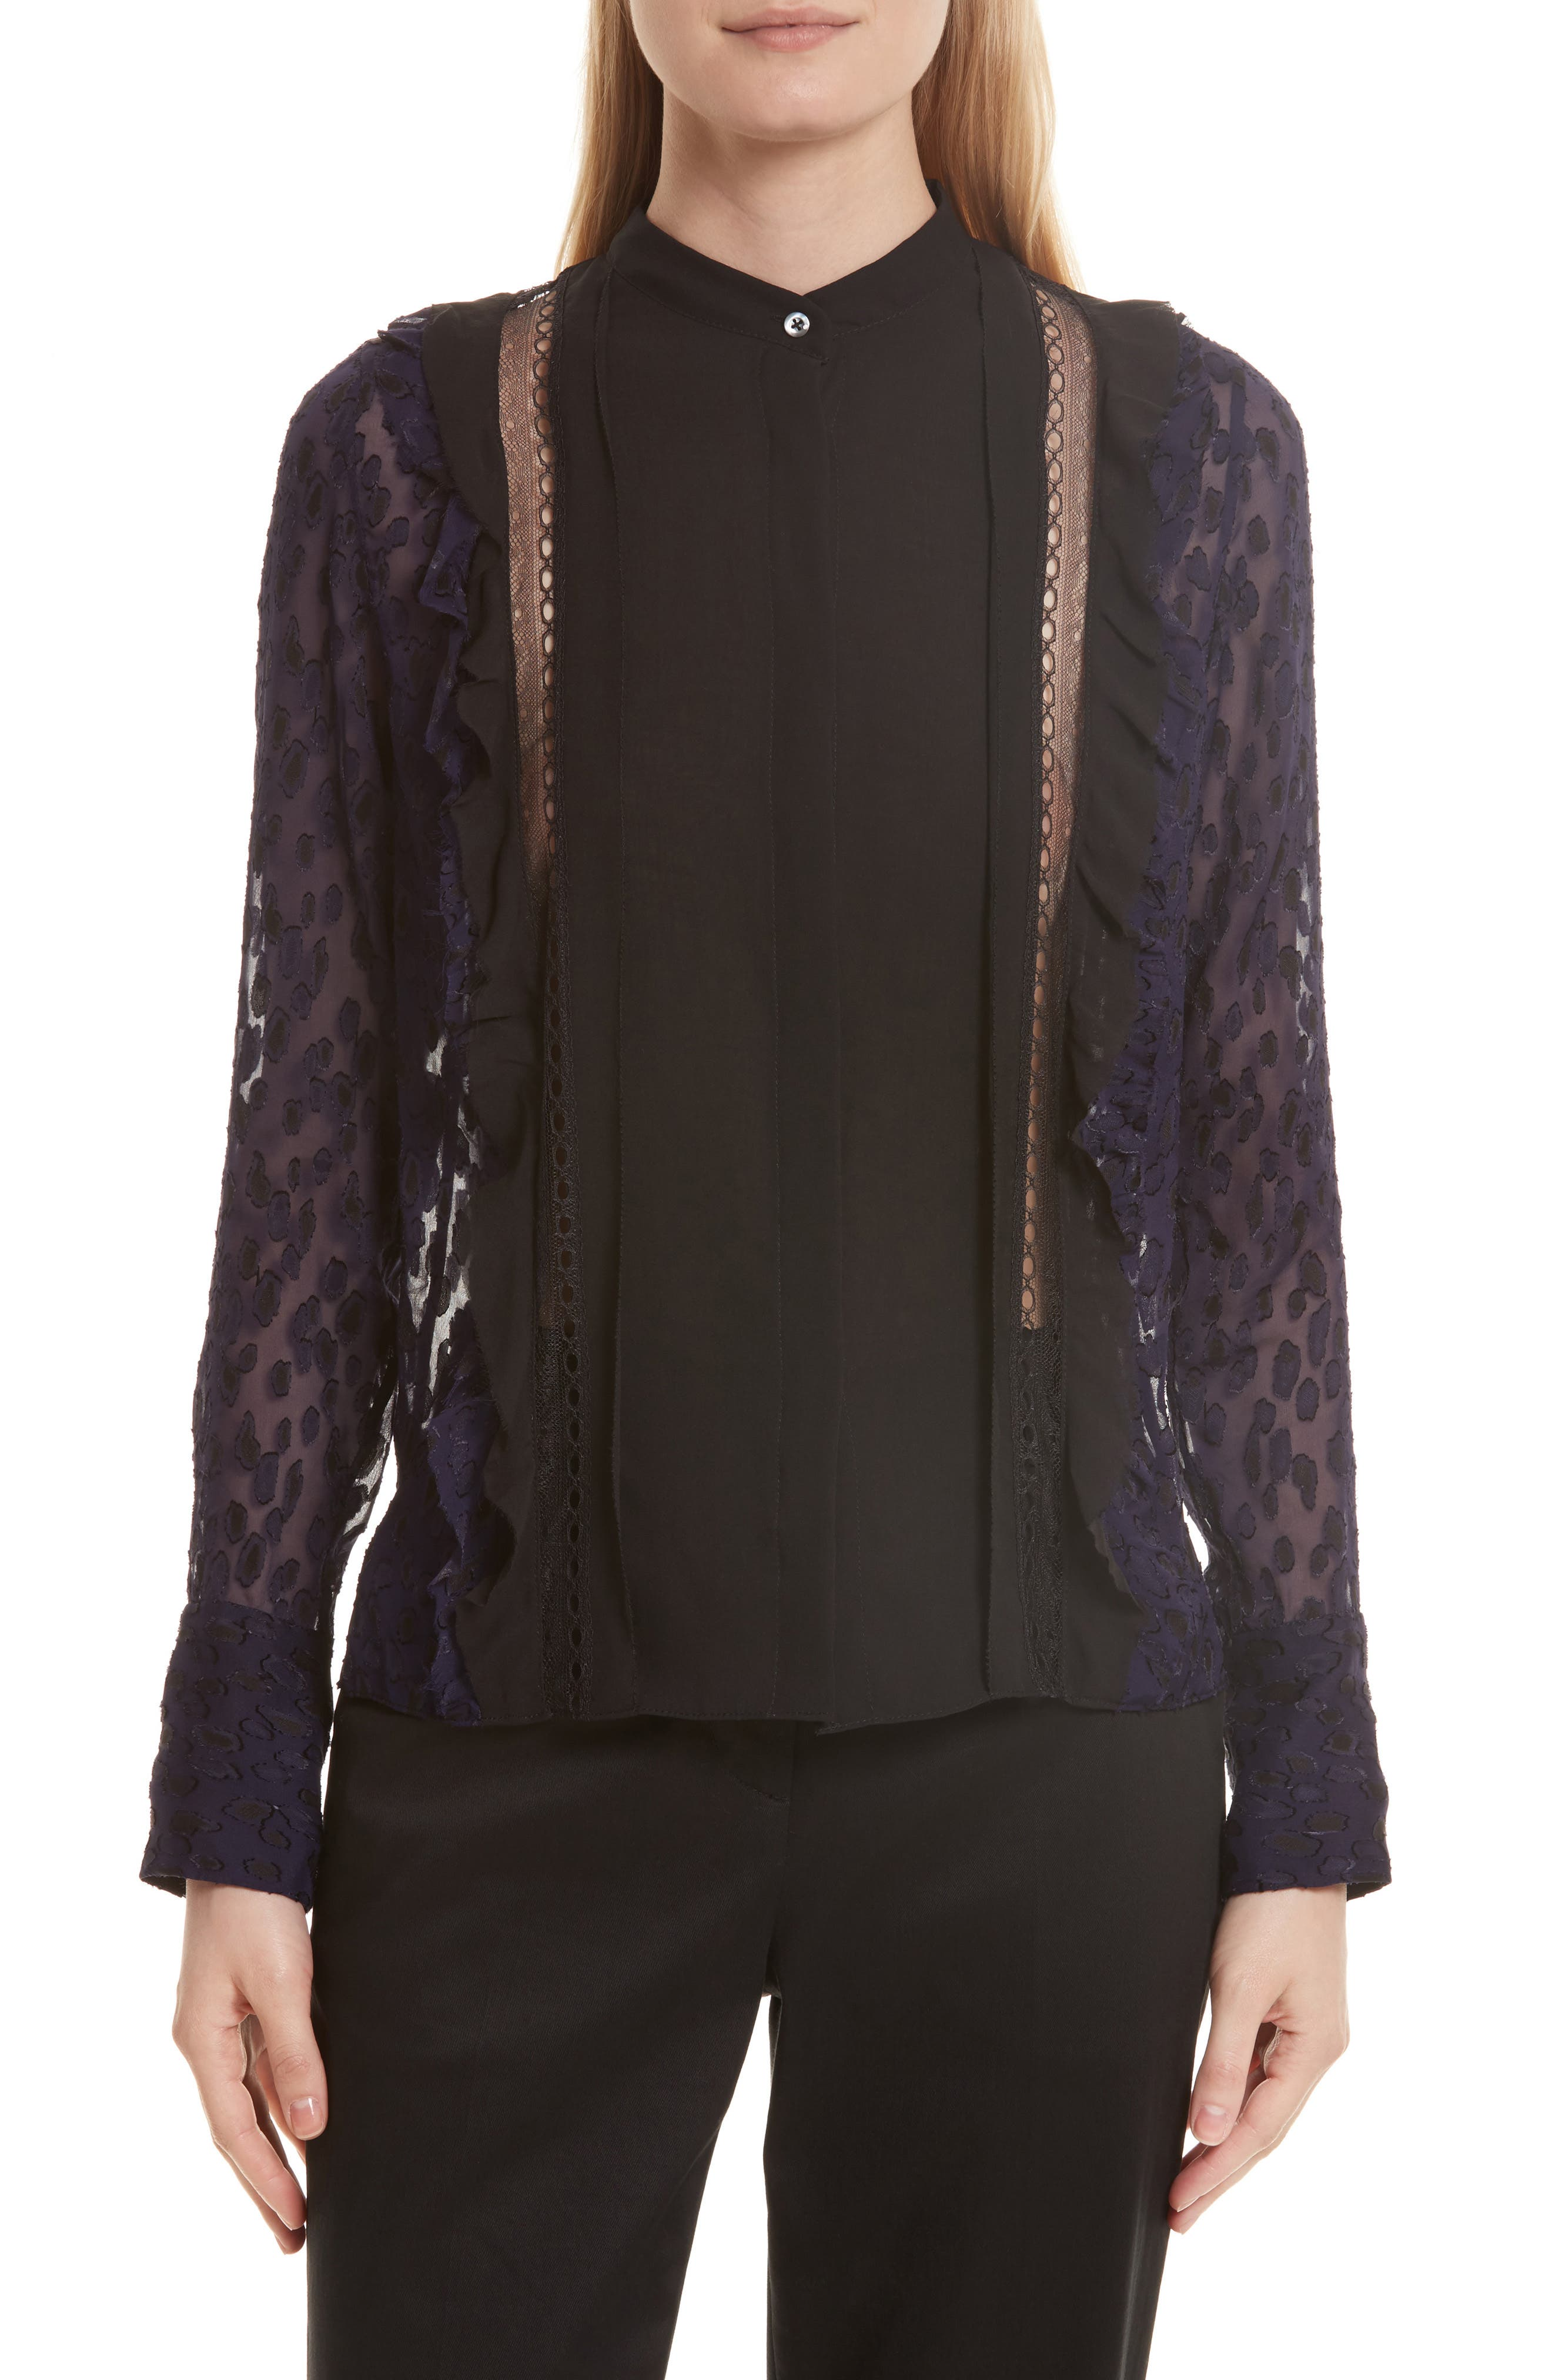 3.1 Phillip Lim Fil Coupé Silk Blend Blouse